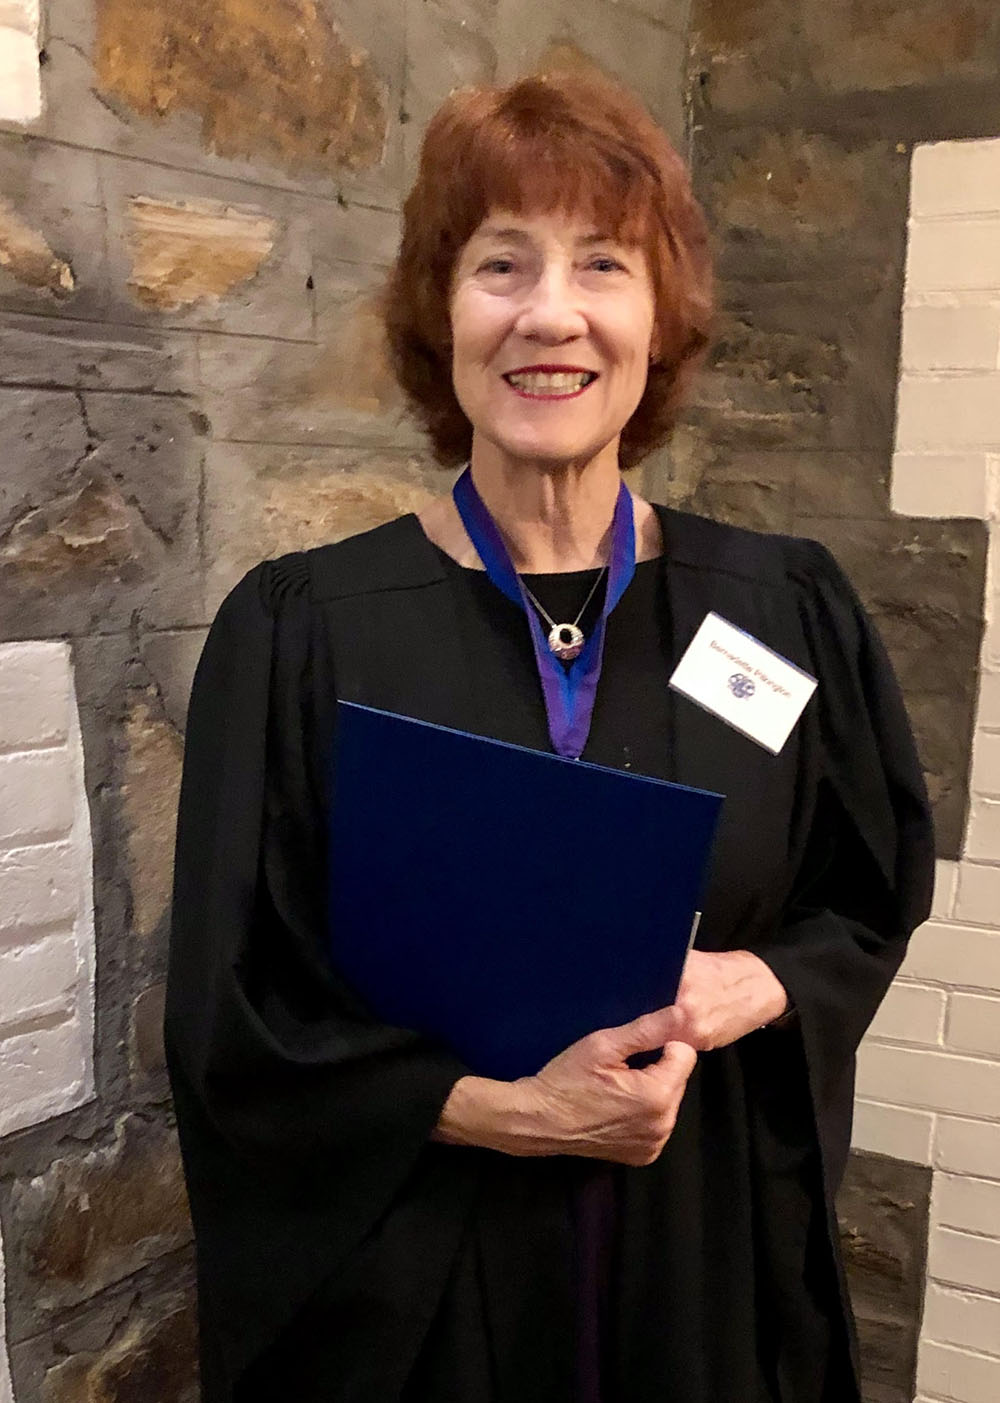 Bernadette standing in a black university gown with a medal on and an award on hand.